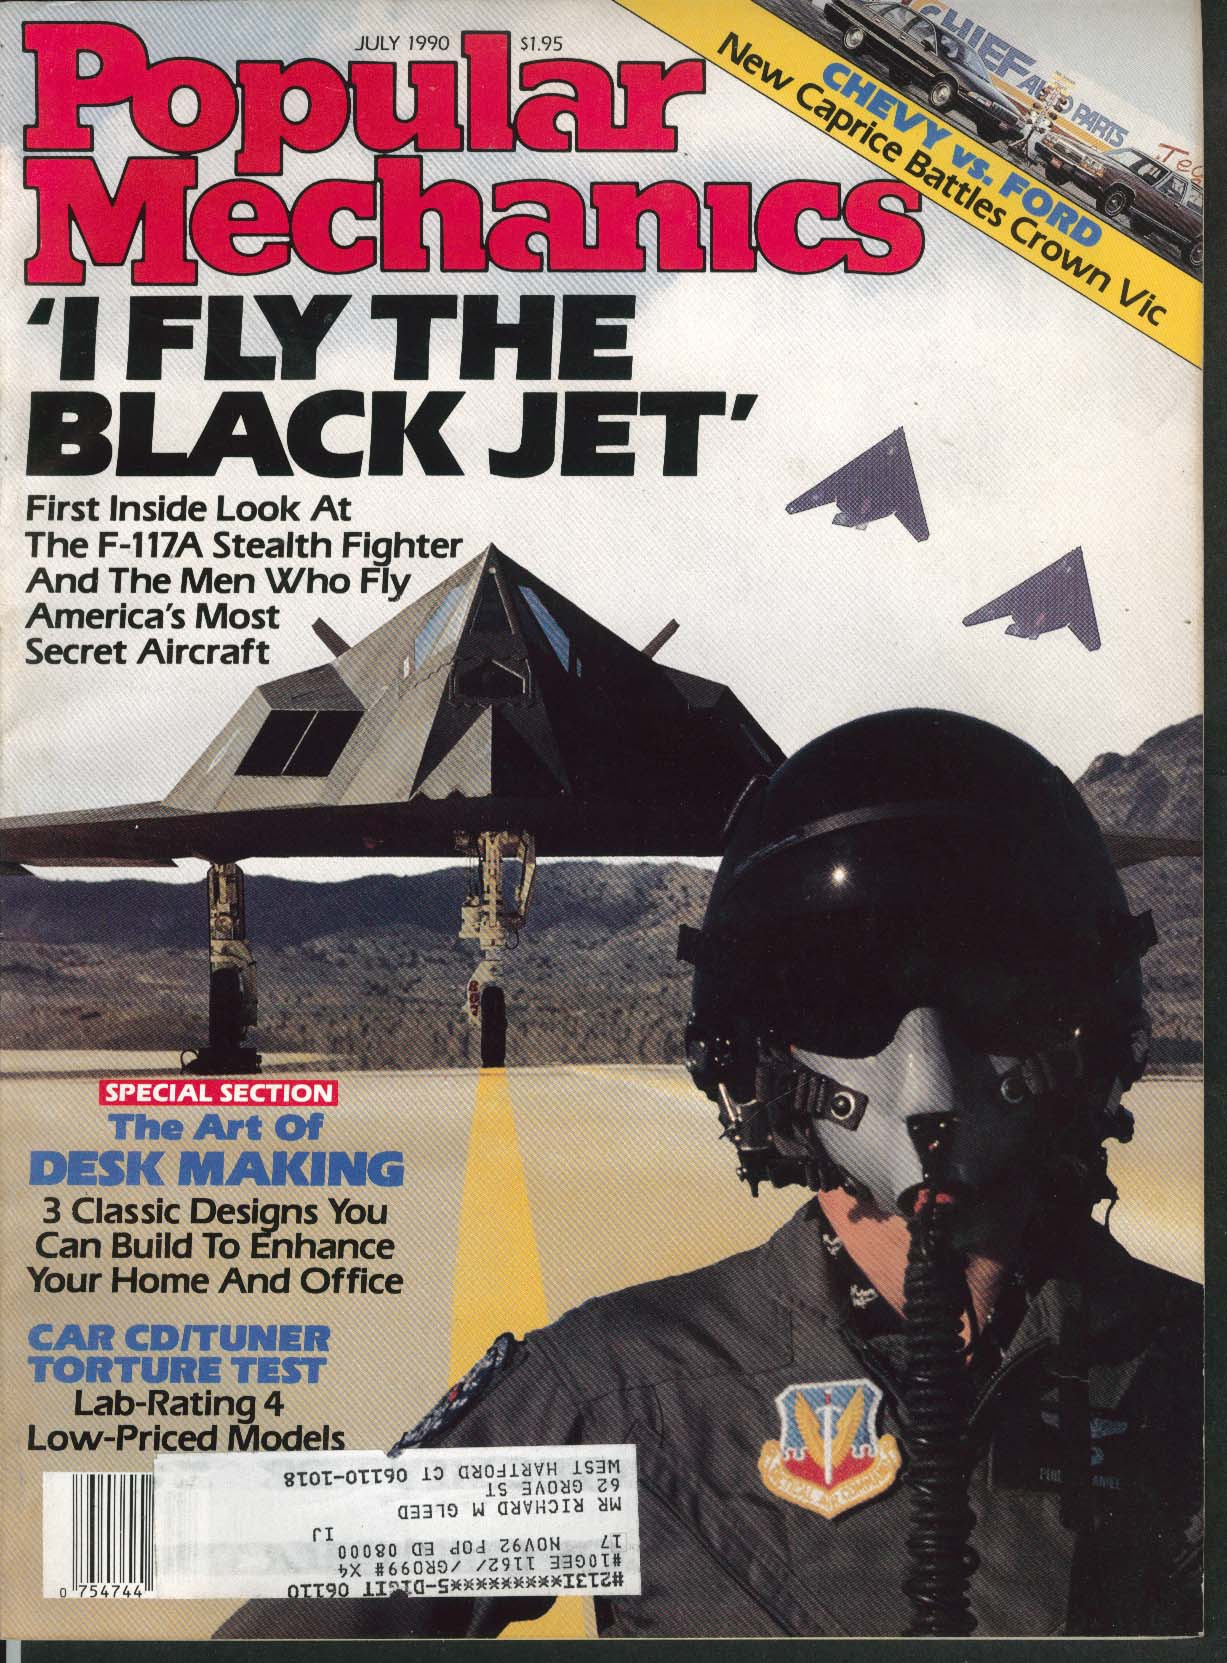 Image for POPULAR MECHANICS Stealth Fighter F-177A Caprice Ford Crown Victoria ++ 7 1990